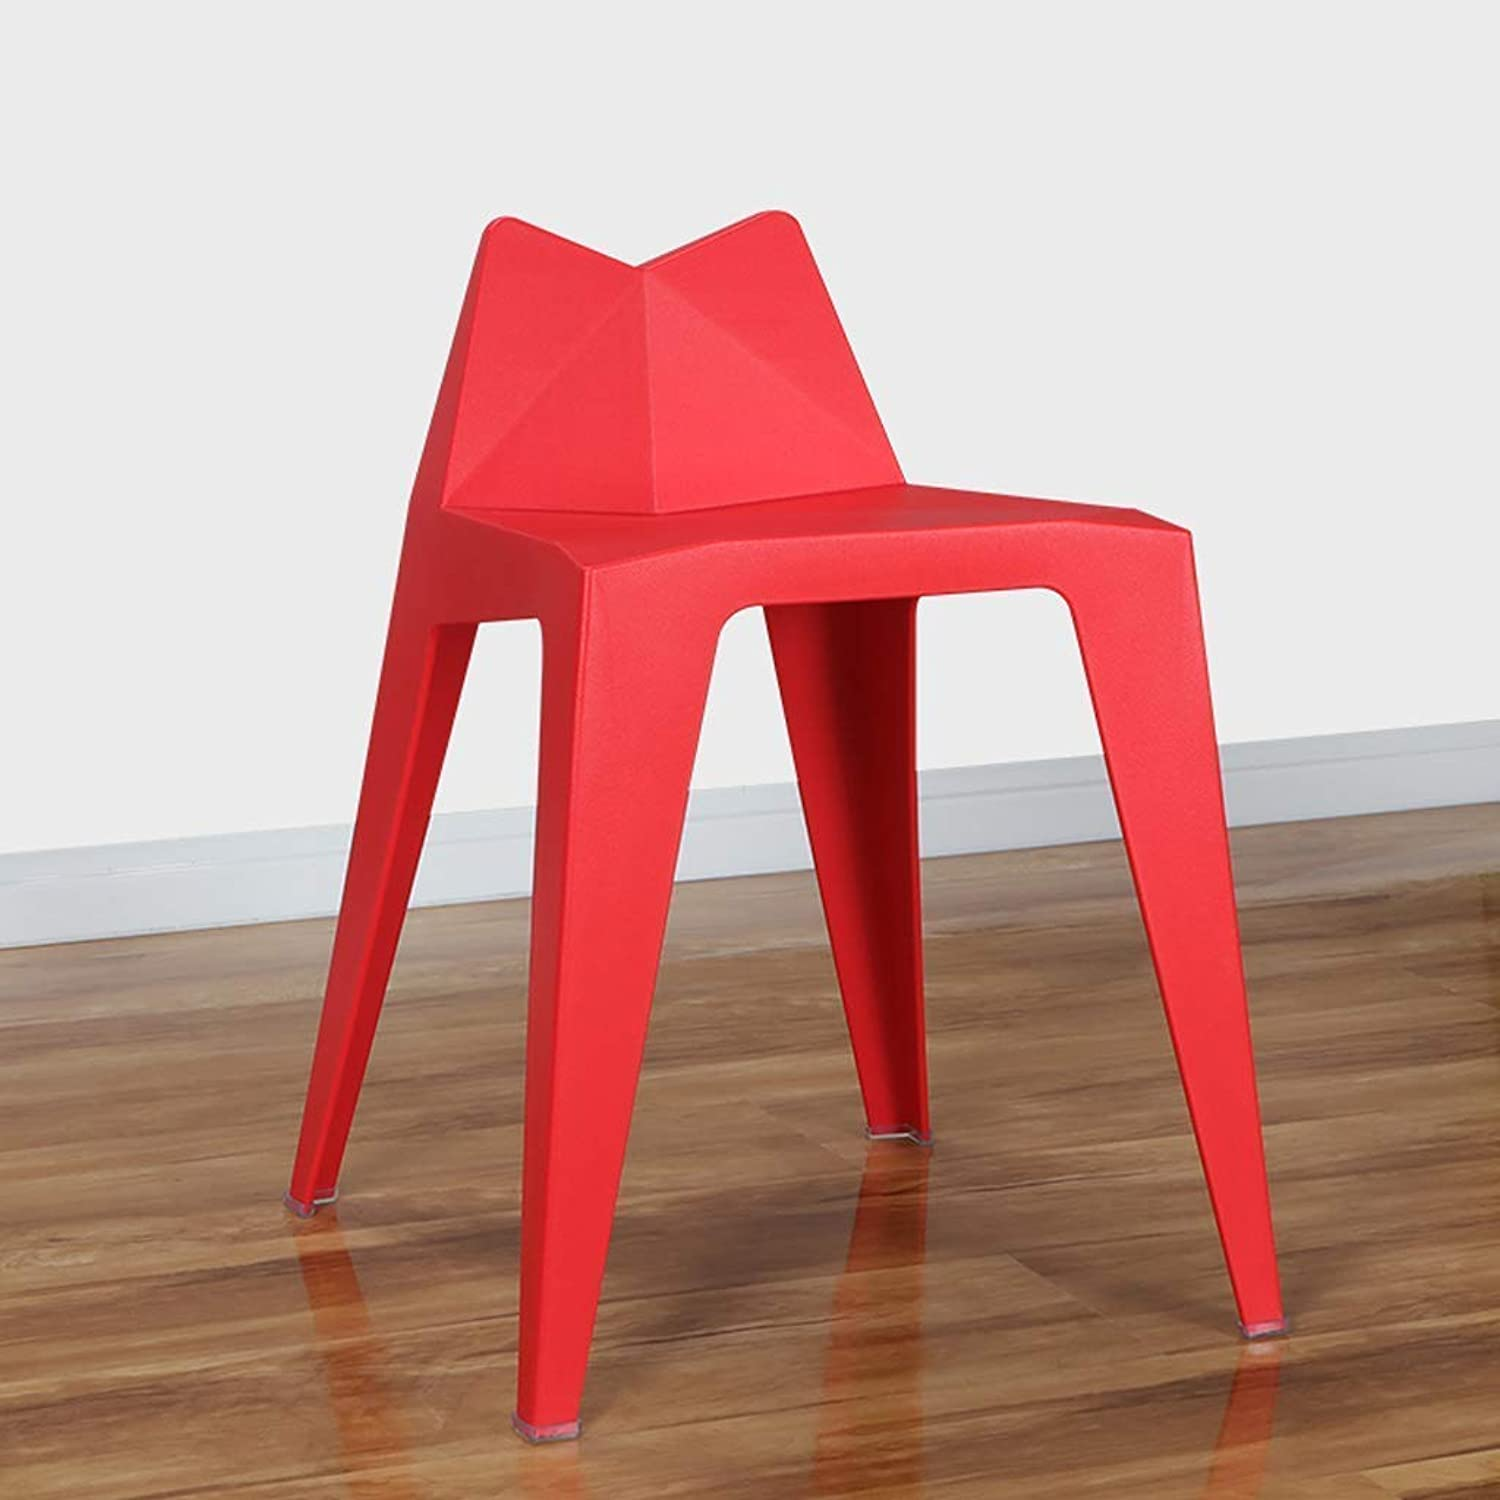 Chair-Simple Creative Chair Backrest Stool Restaurant Tea Shop Lounge Chair Cafe Fashion Personality Stool Chair,Red